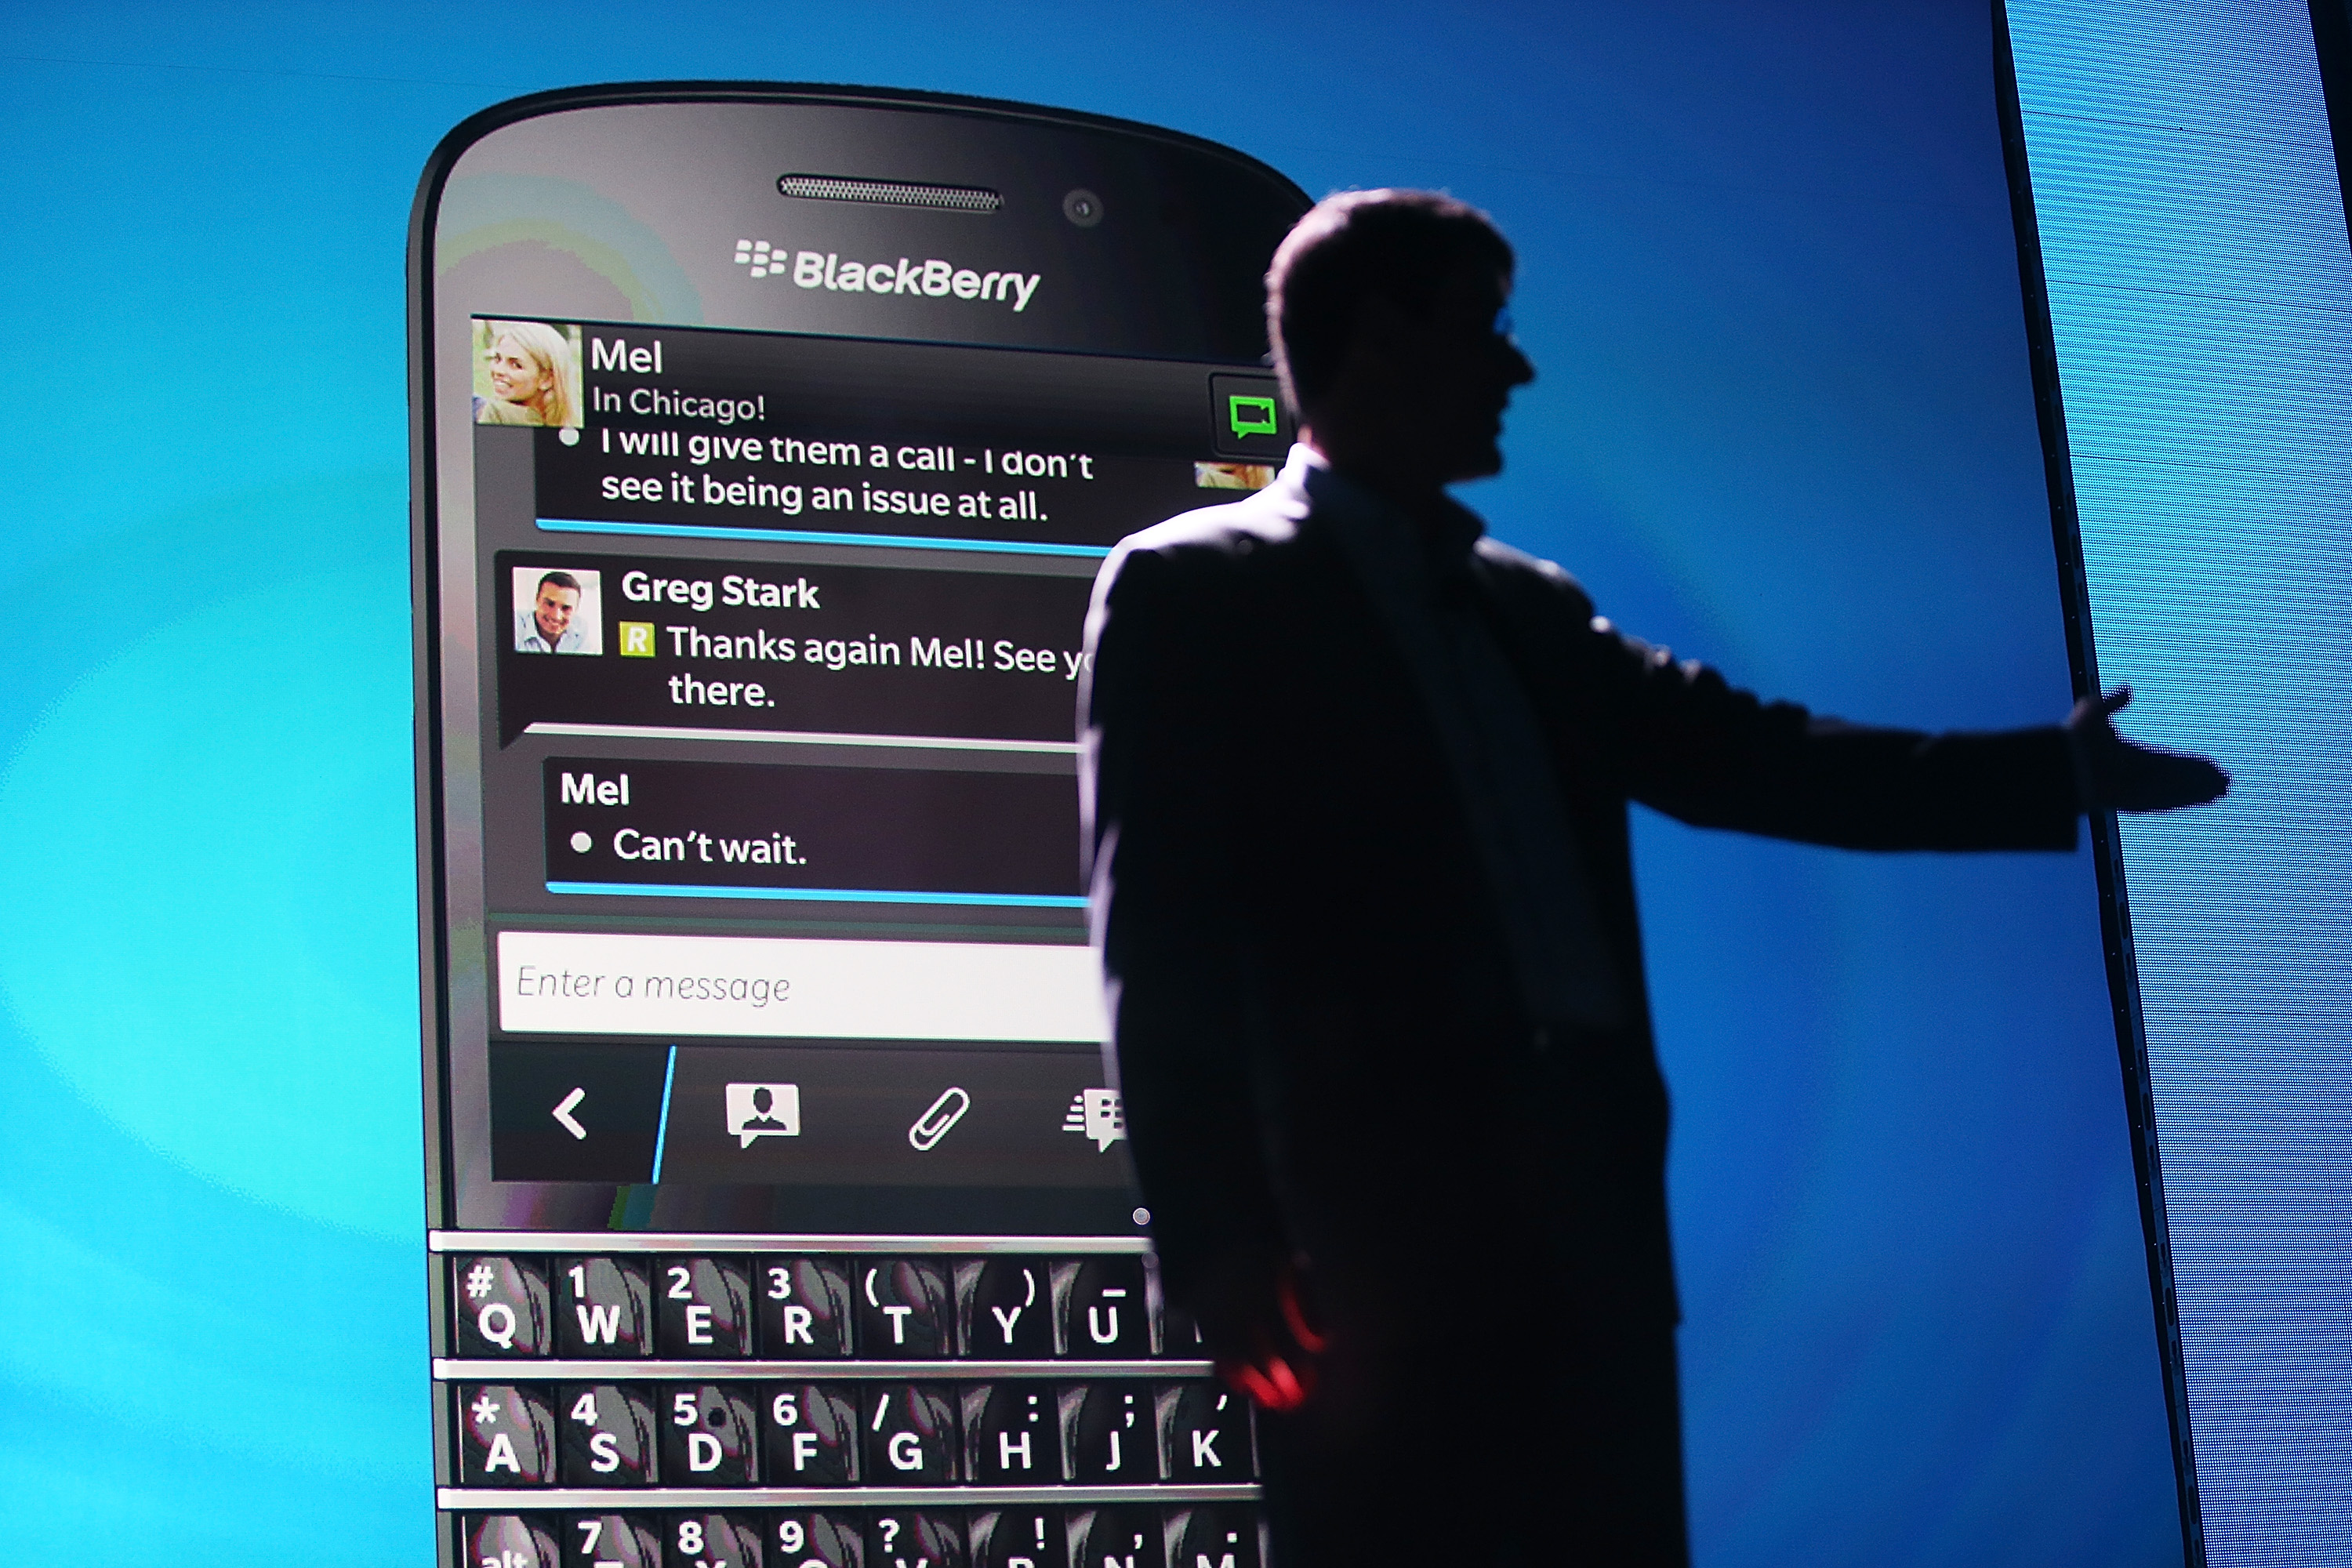 BlackBerry Confirms Sponsored Content in BBM Channels, Not BBM Chats